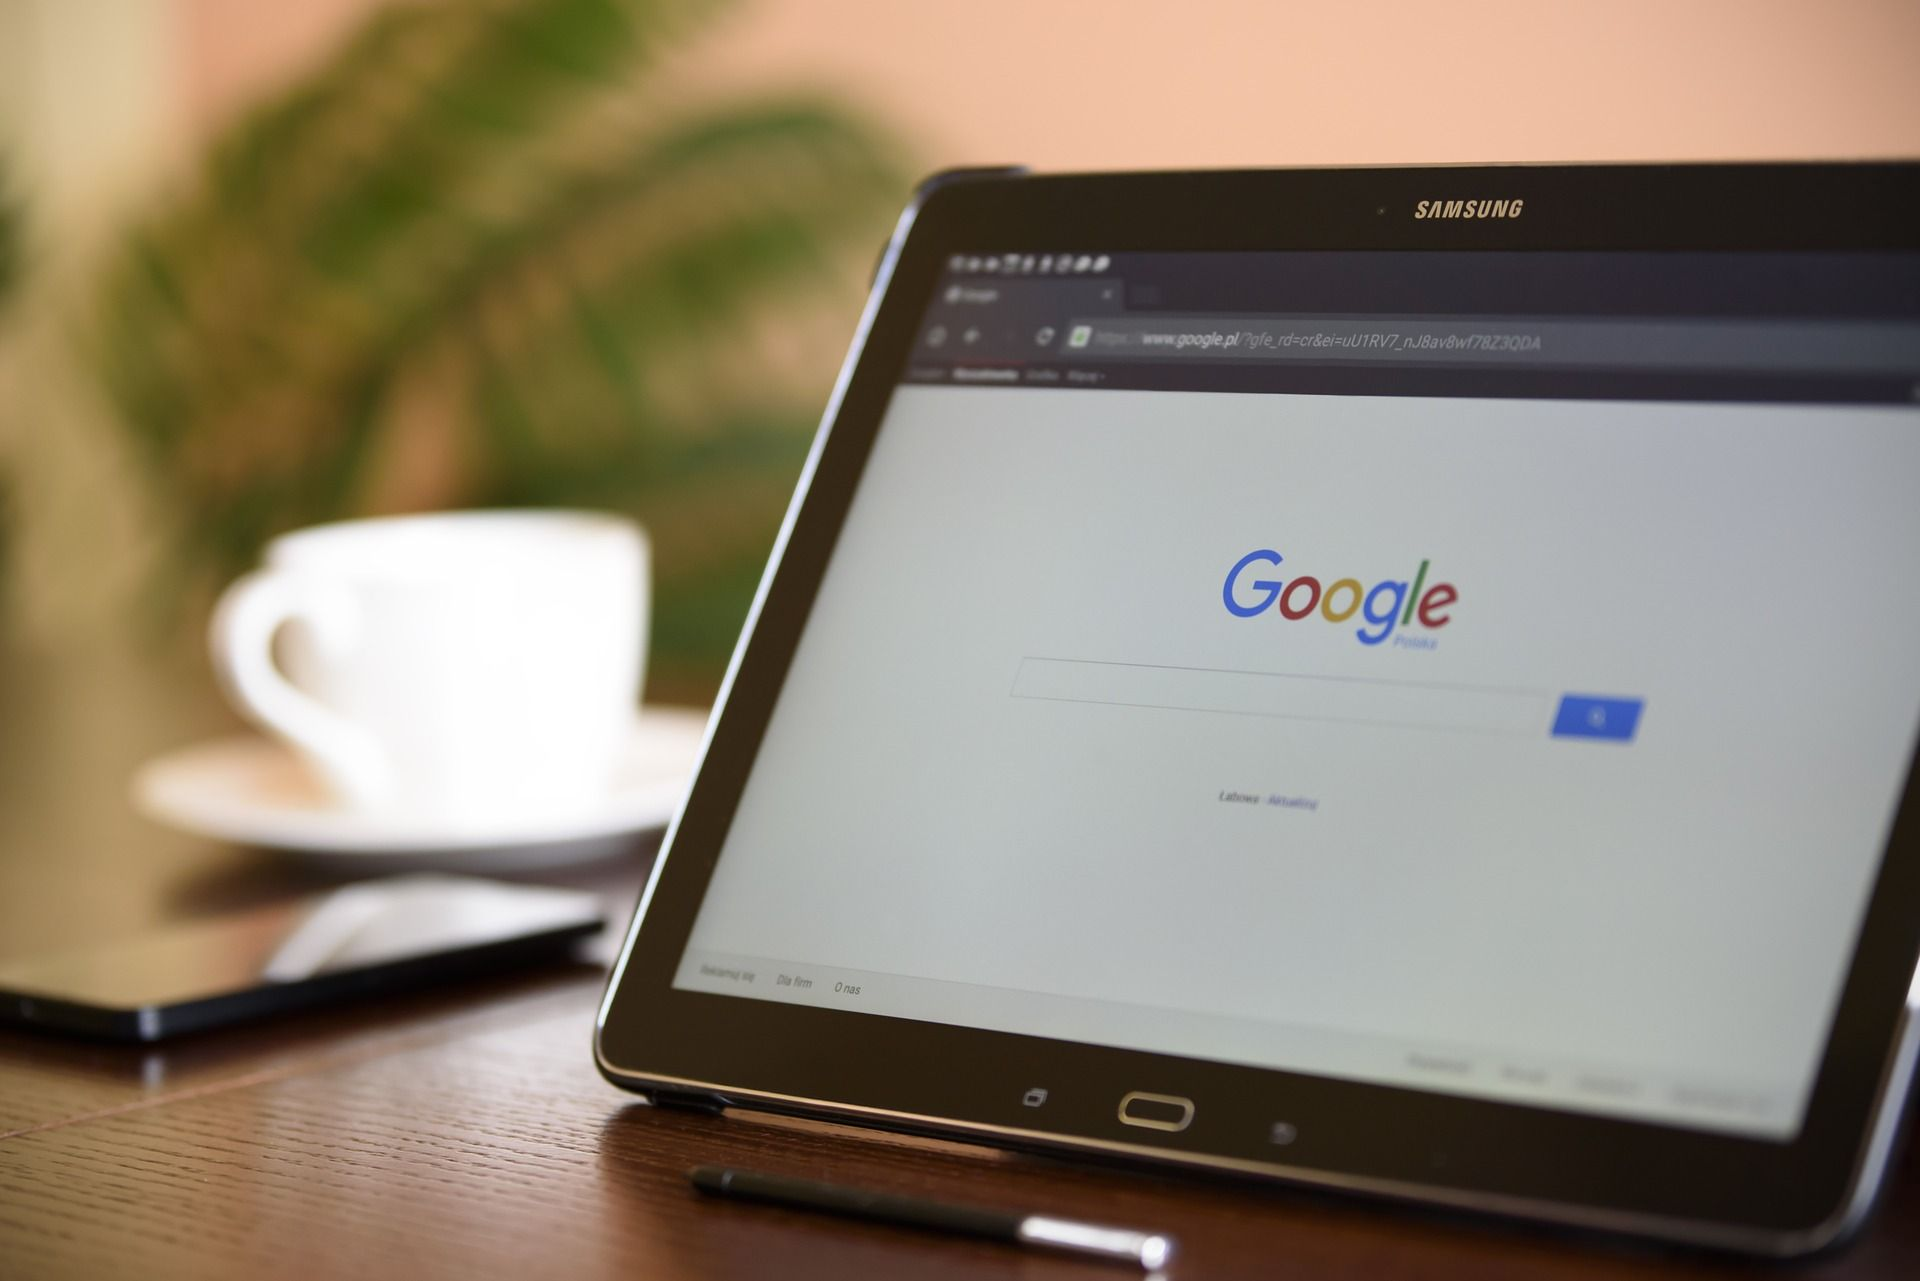 Google search on device